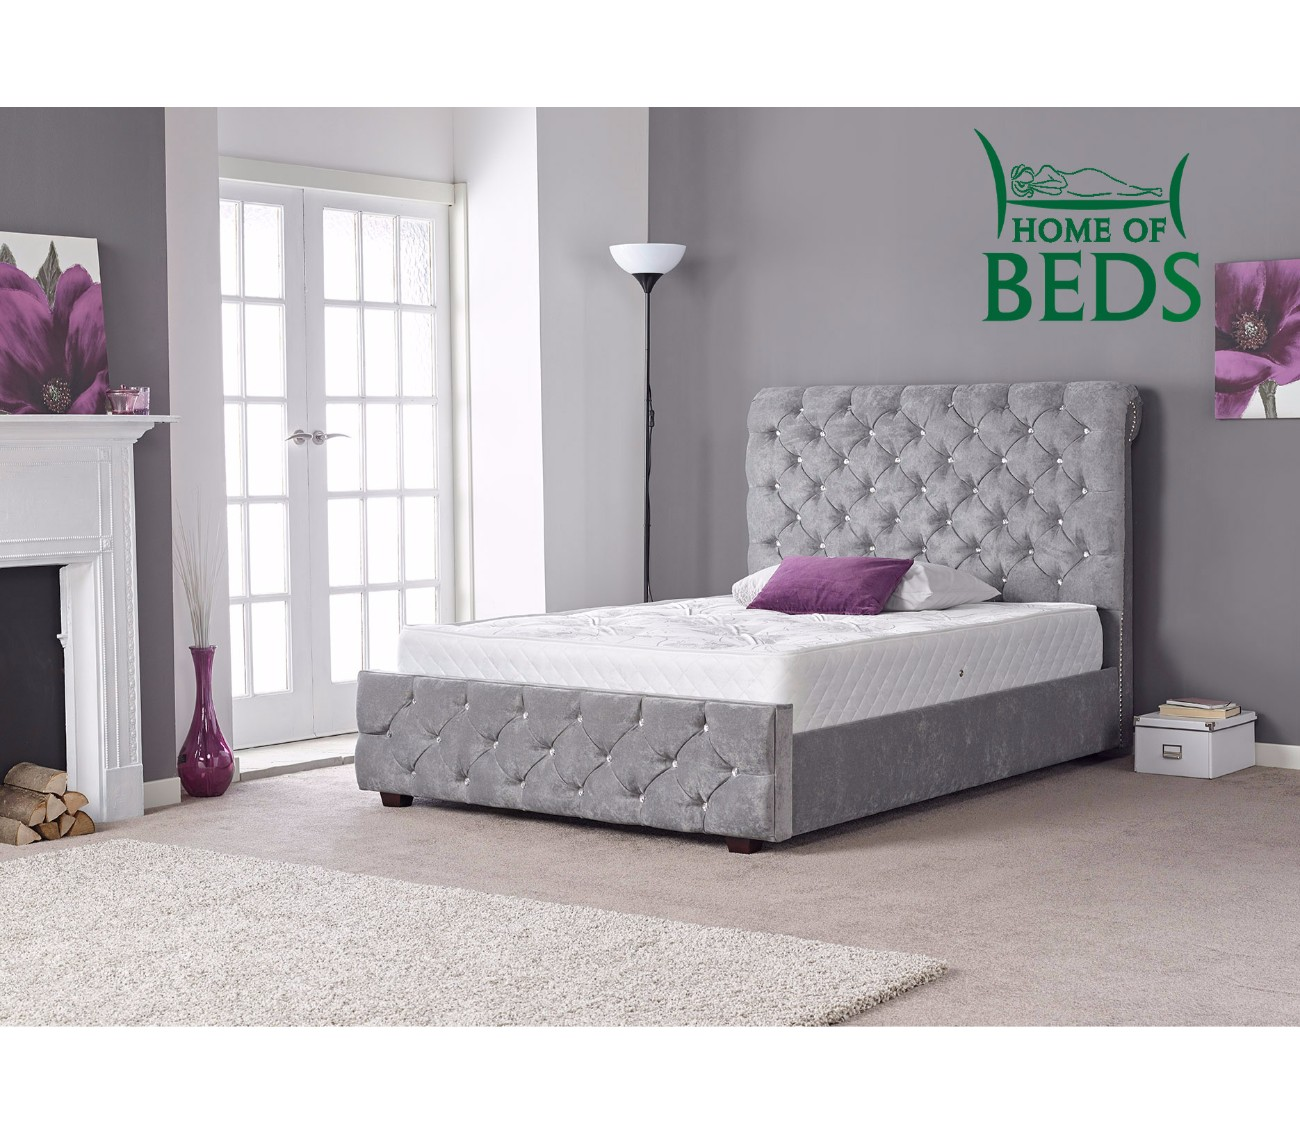 HOB_thumb_Hannah_Bed_Grey